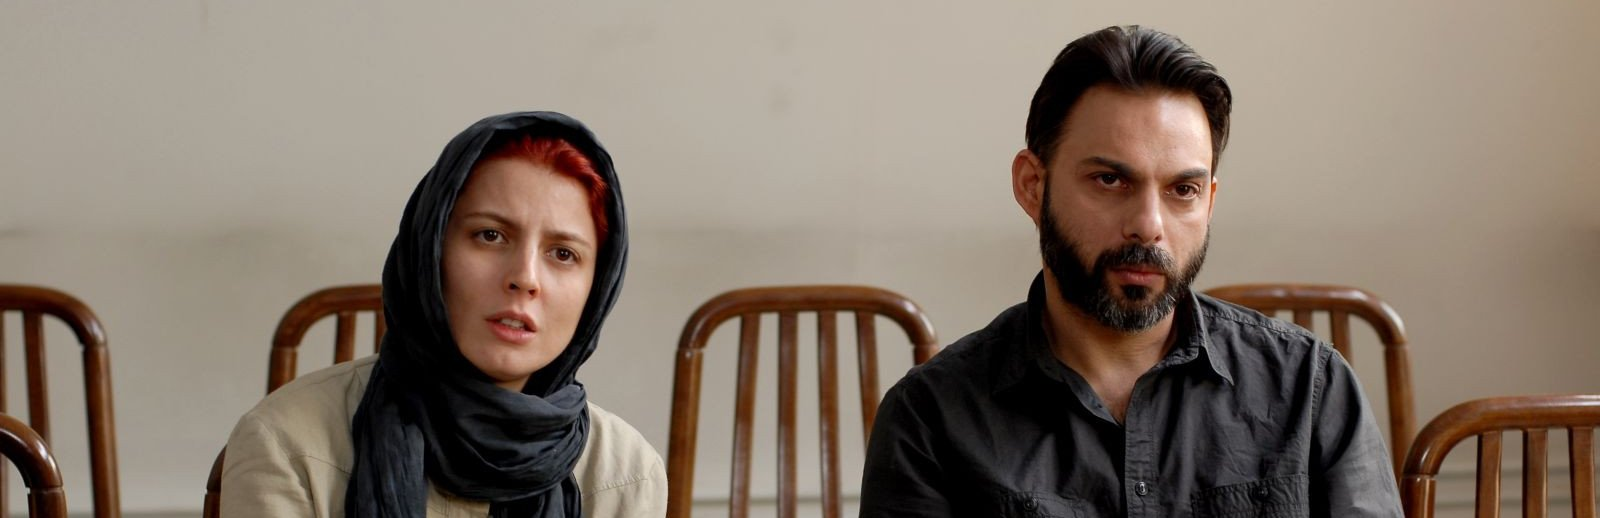 Film: A Separation feature image